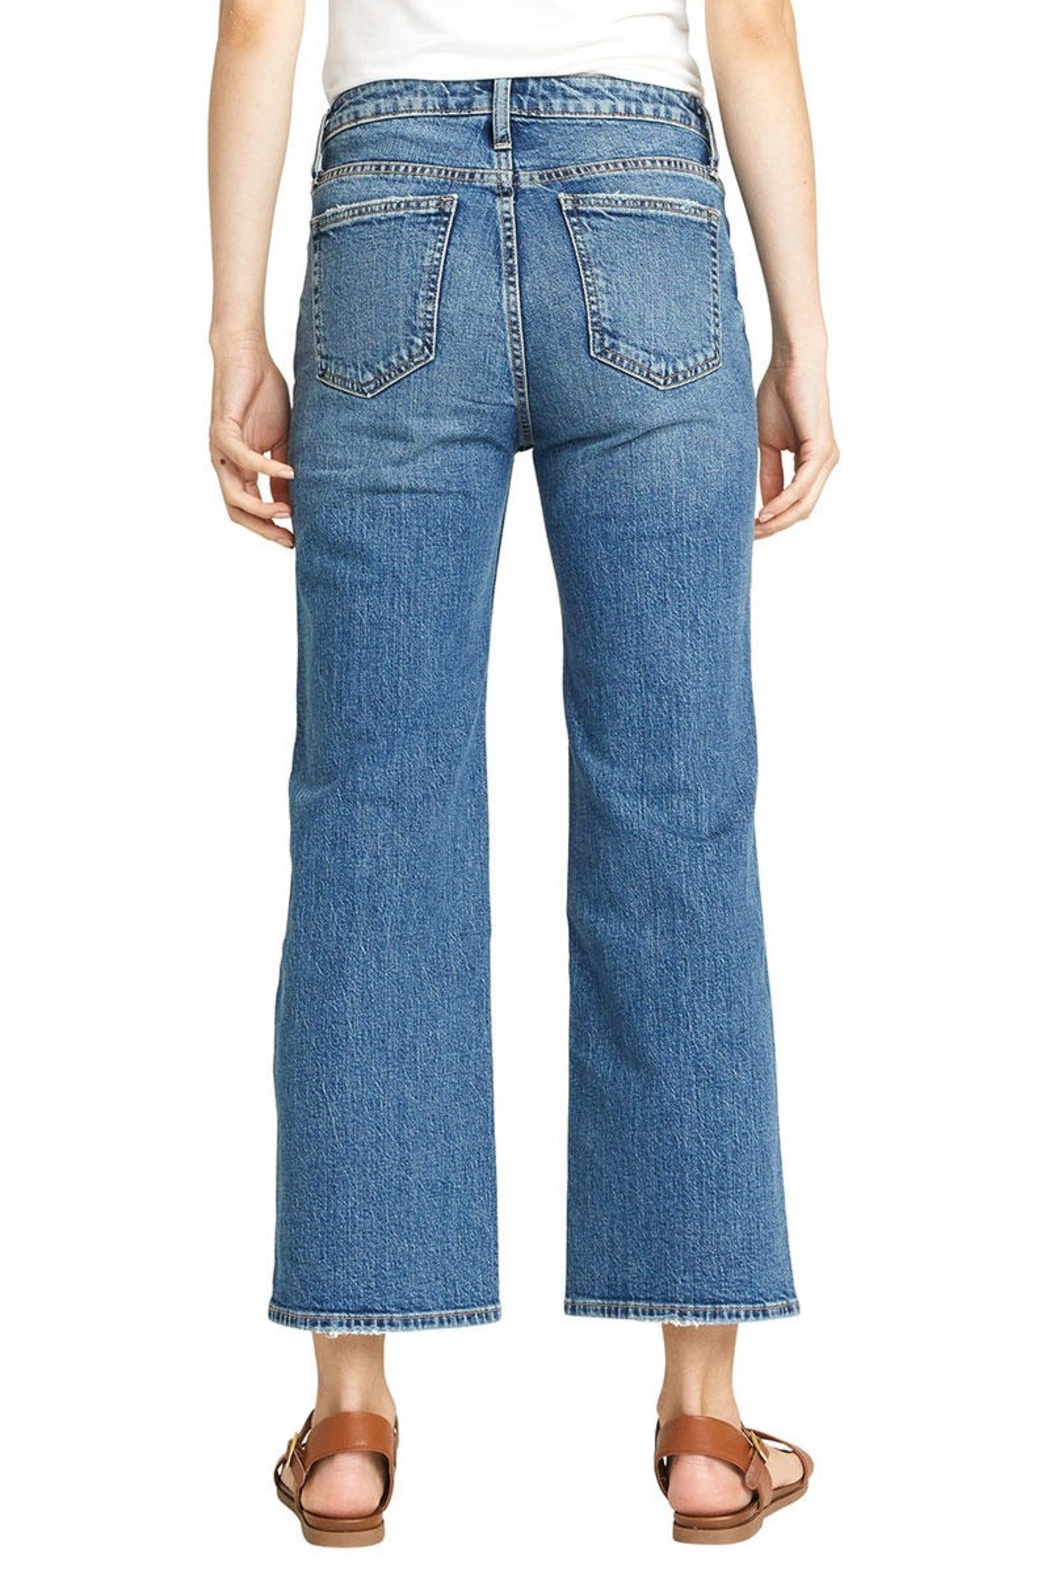 Silver Jeans Co. cropped jeans - Front Full Image